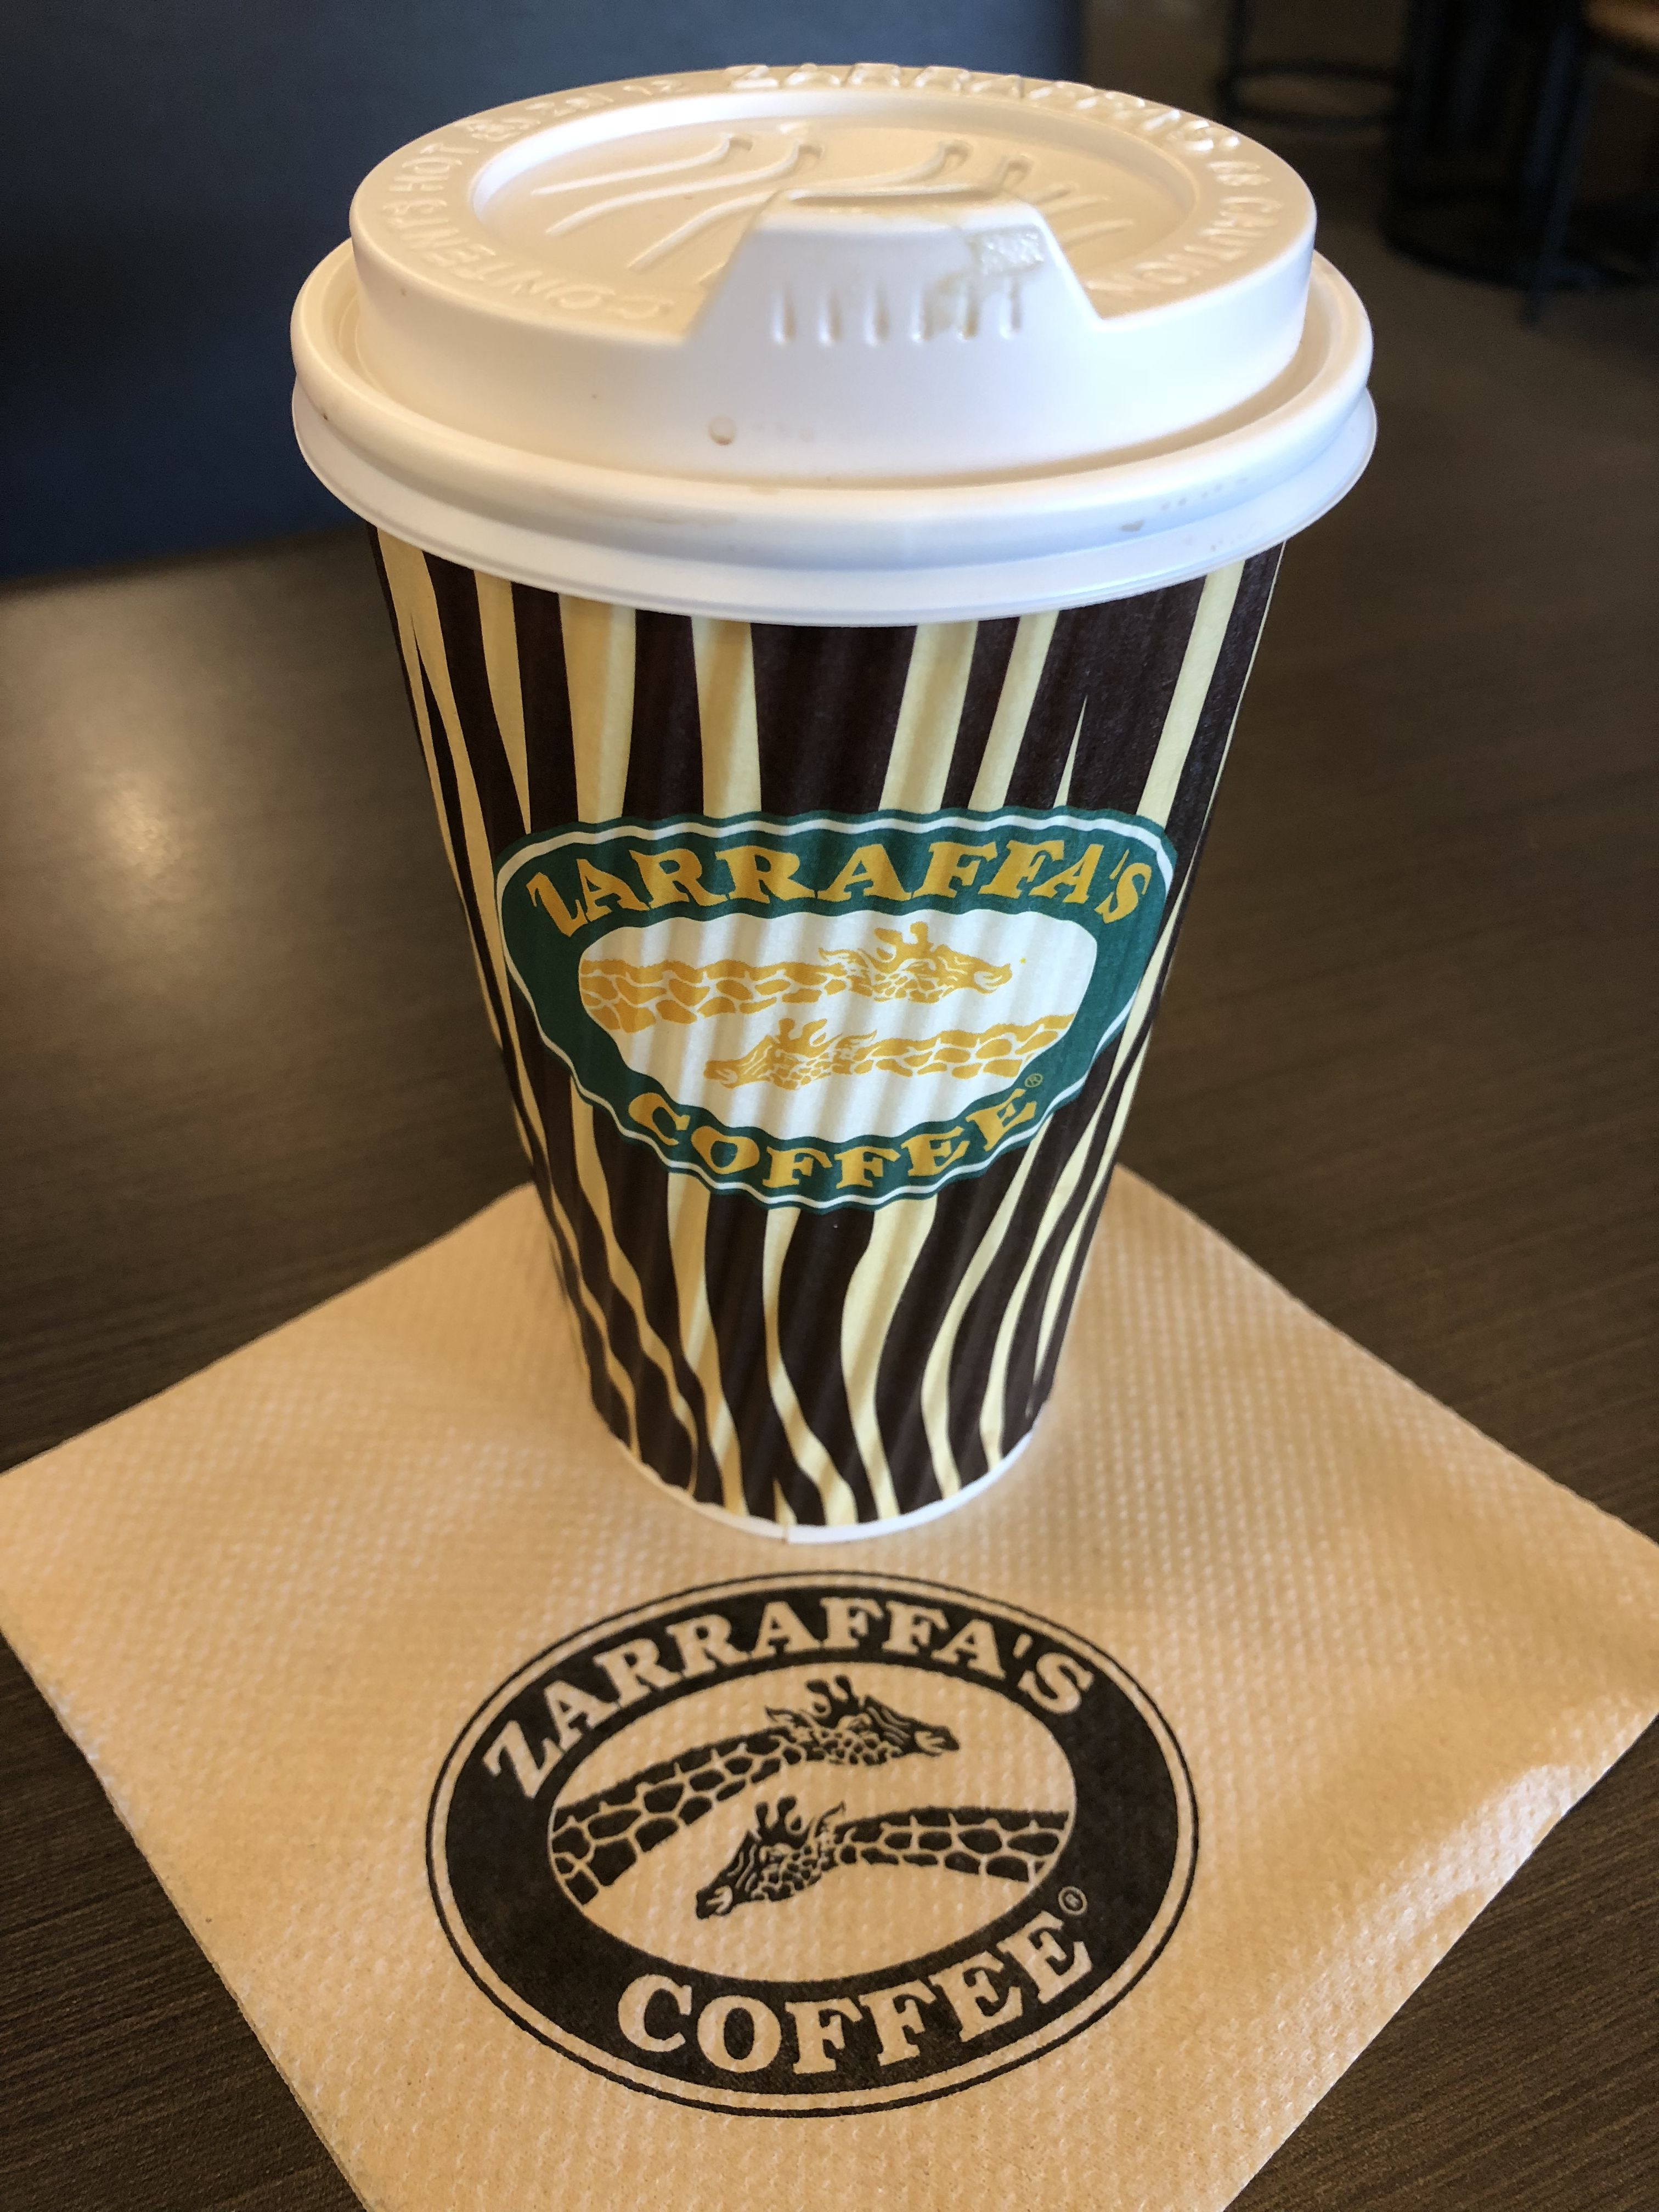 Zarraffas Coffee Is The Best New Cafe Around I Got The Flatwhite Whilst The Wife Had Juice And A Croissant They Ha Coffee Oh Captain My Captain Glassware